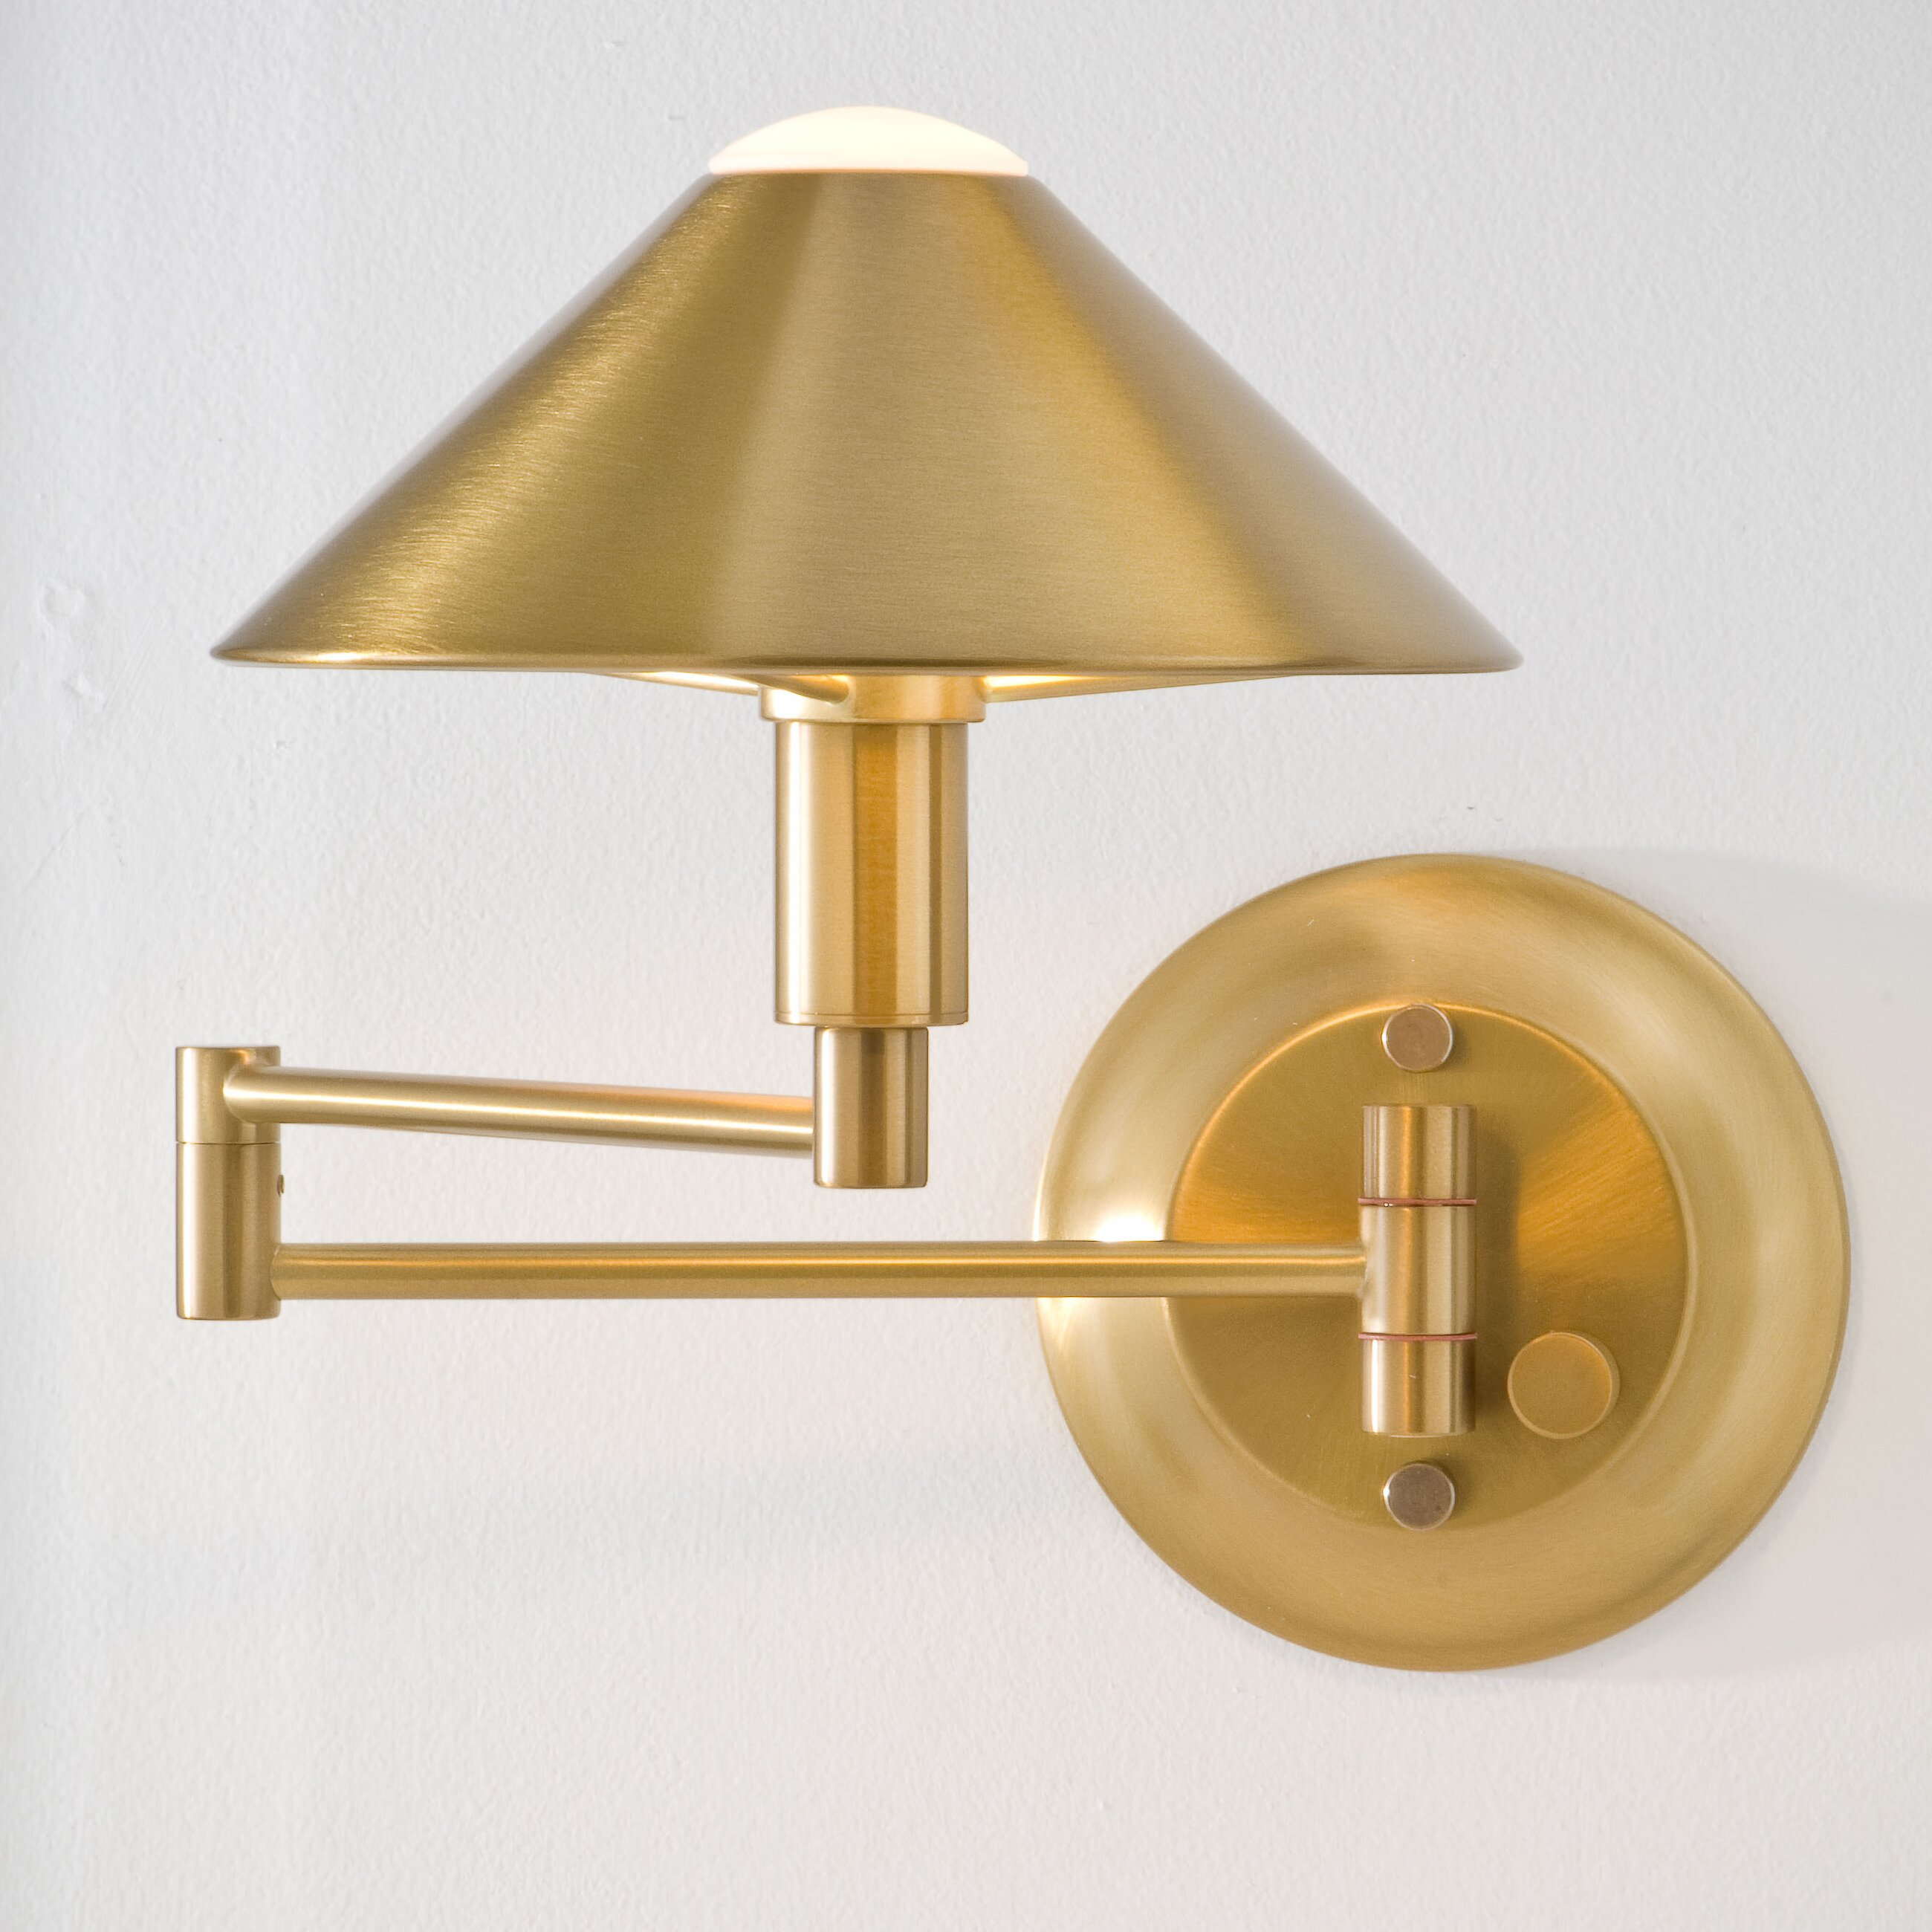 Wayfair Lights: 1 Light Wall Sconce